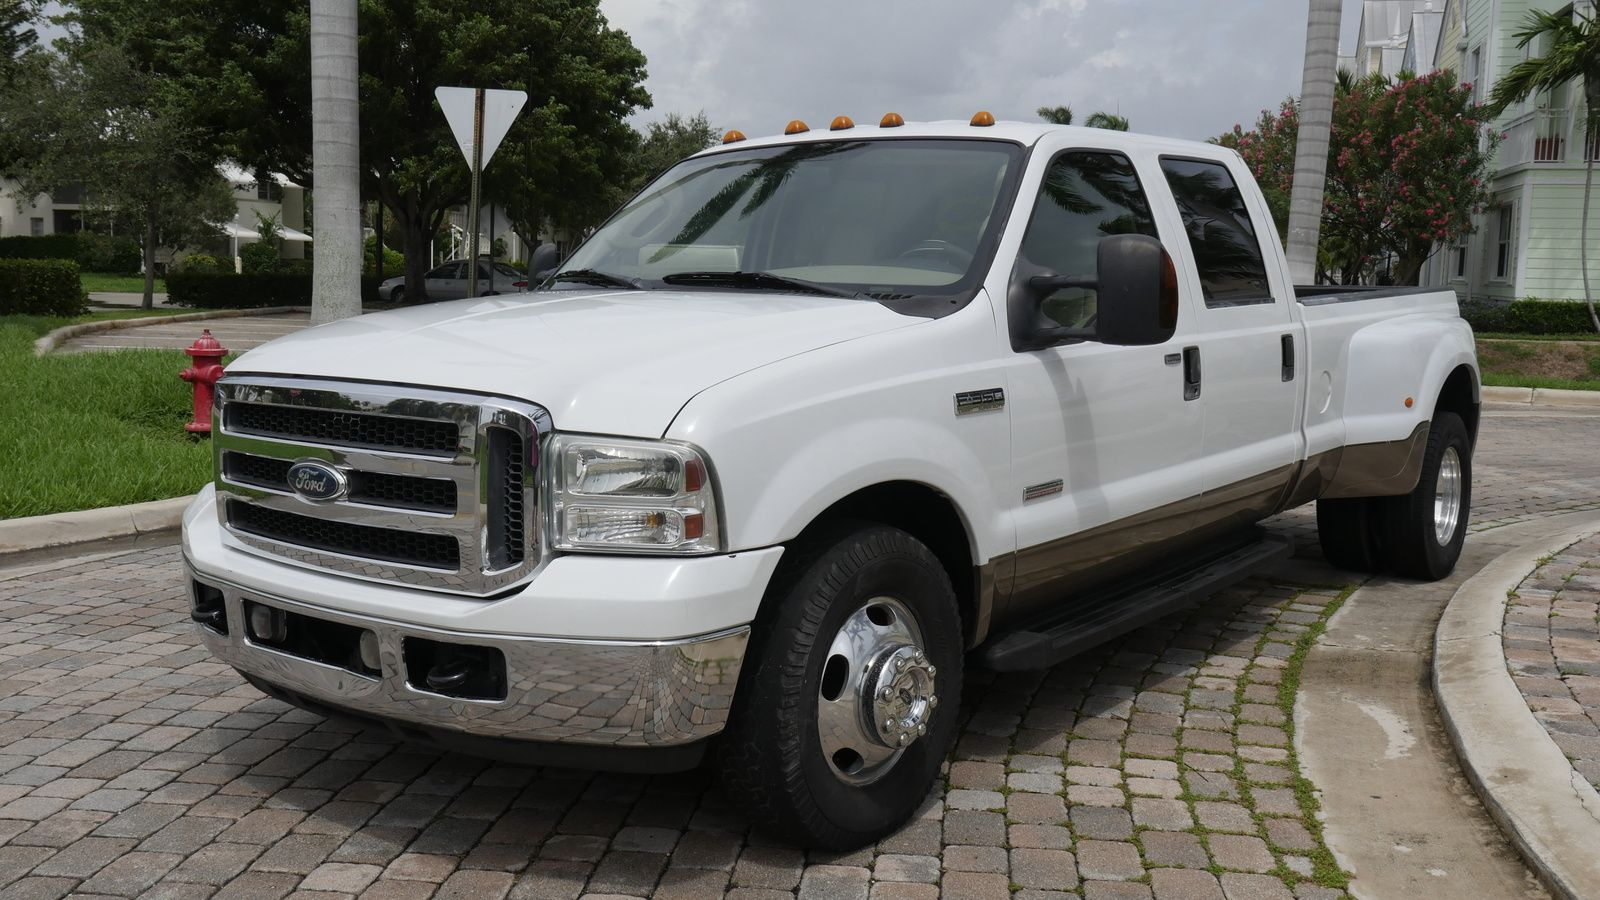 Teamcontender s 2007 ford f 350 super duty lariat crew cab drw